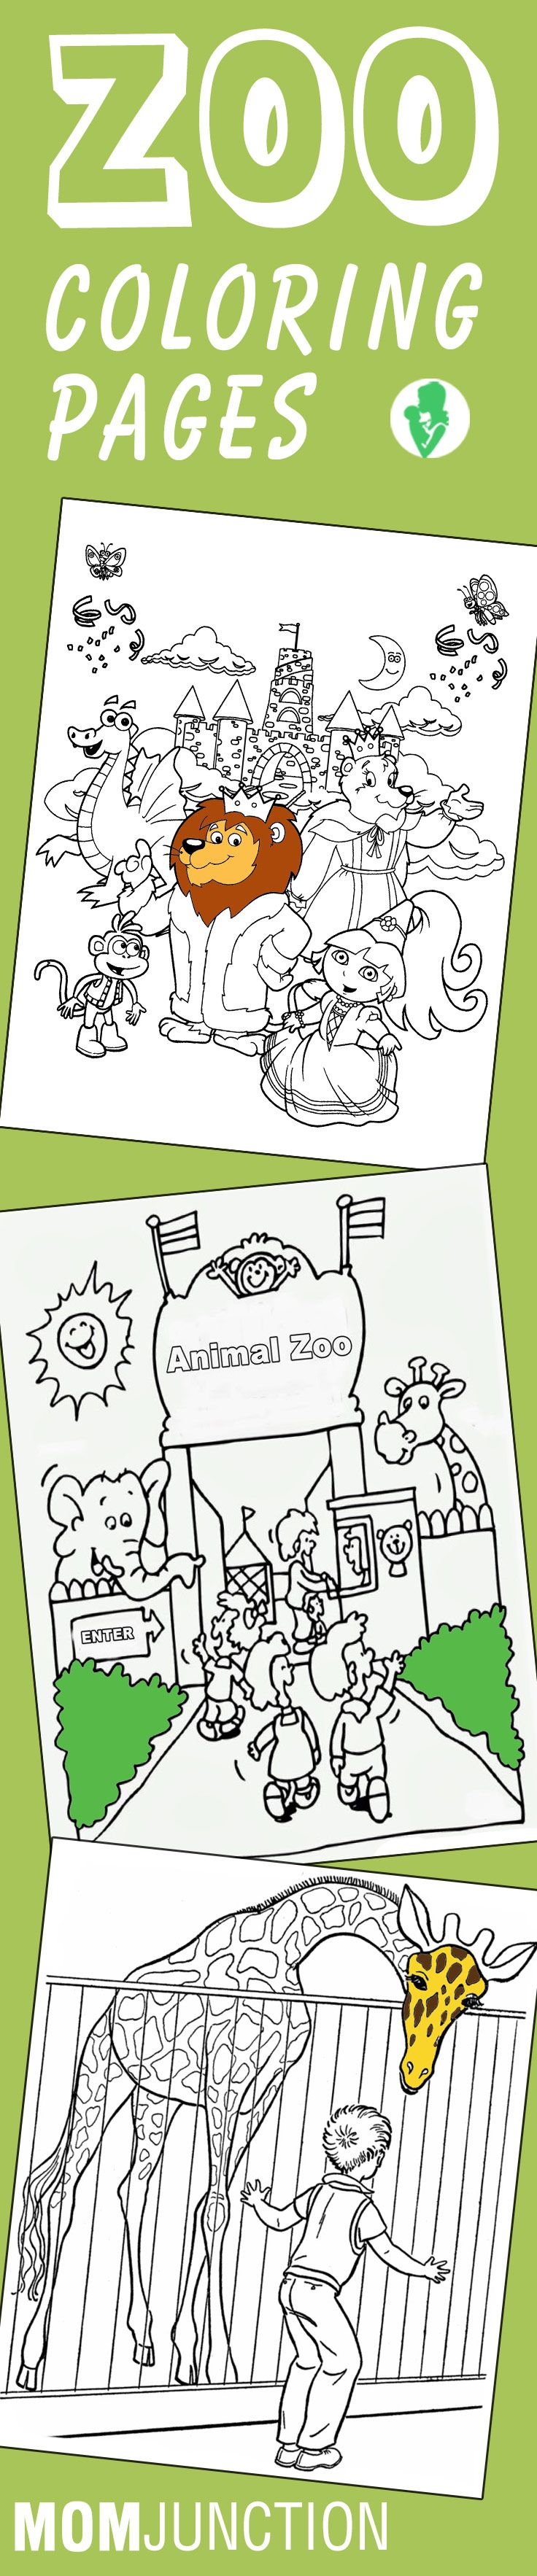 Zoo coloring games online - Top 25 Free Printable Zoo Coloring Pages Online